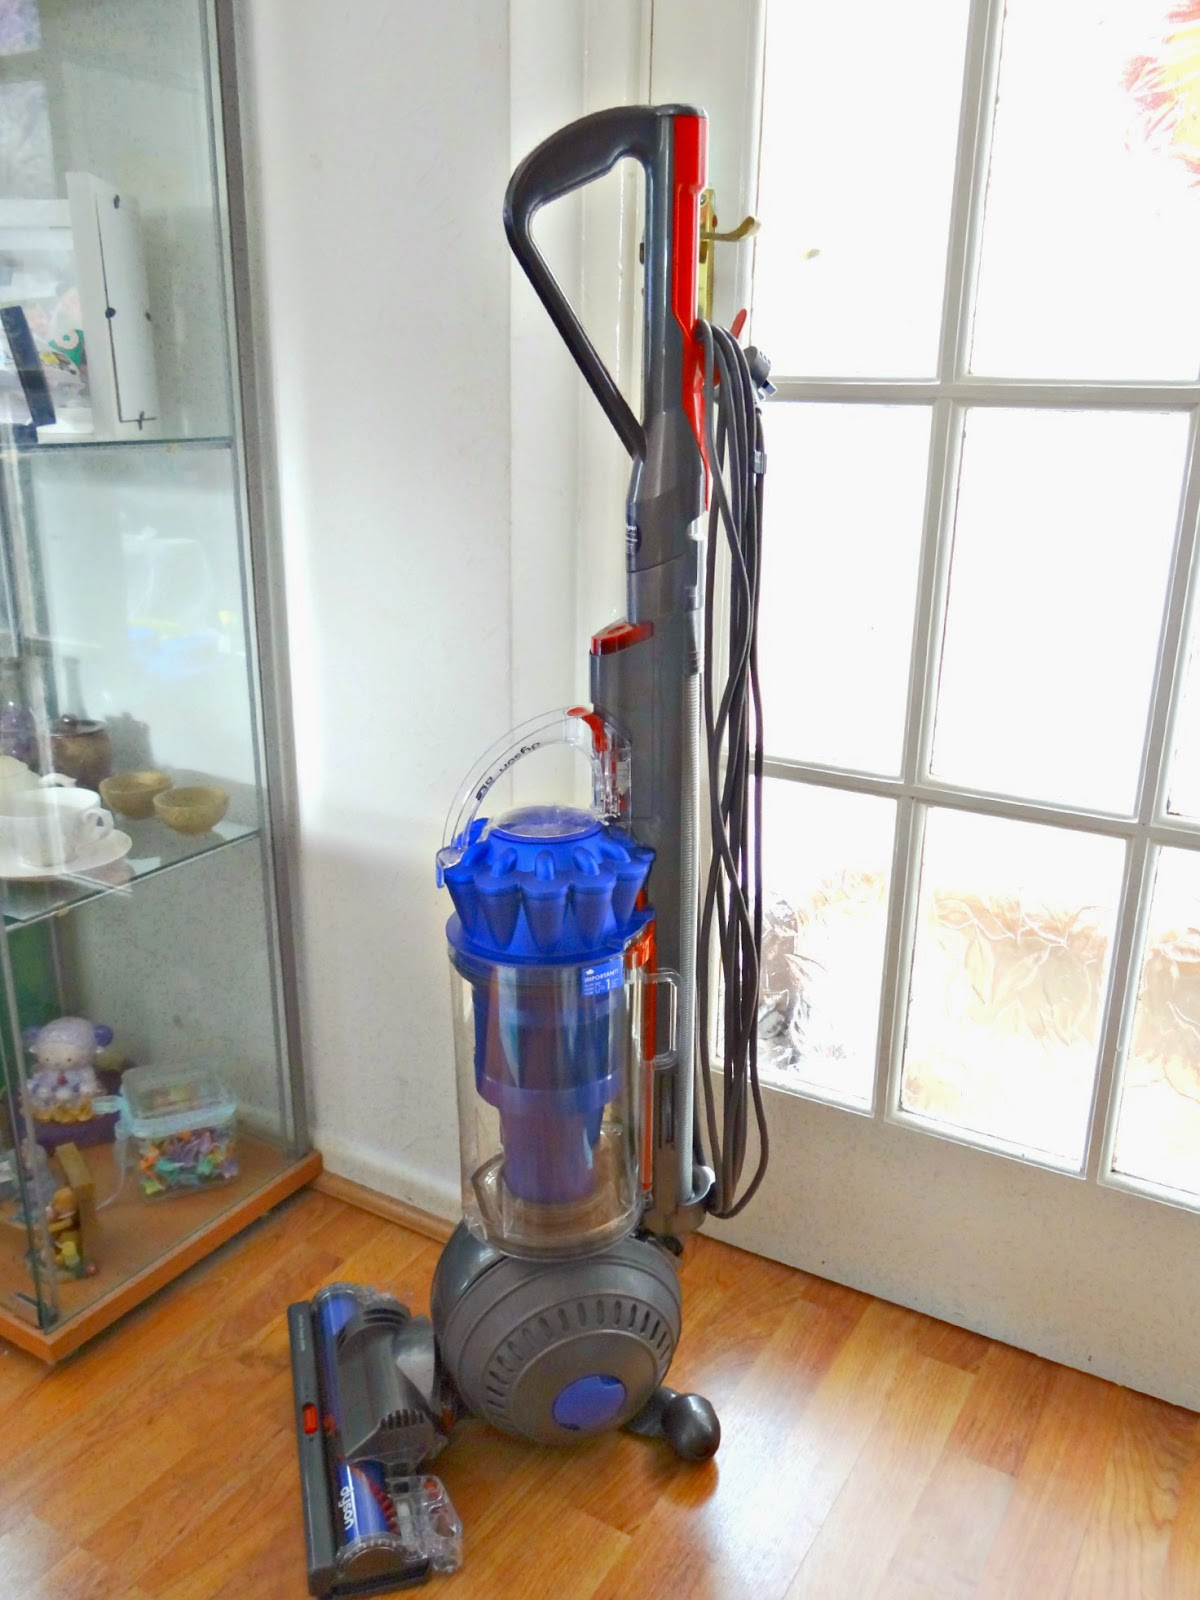 Dyson DC41 Animal upright vacuum cleaner, powerful vacuum cleaner within EU energy saving guidance, vacuum cleaner for animal home